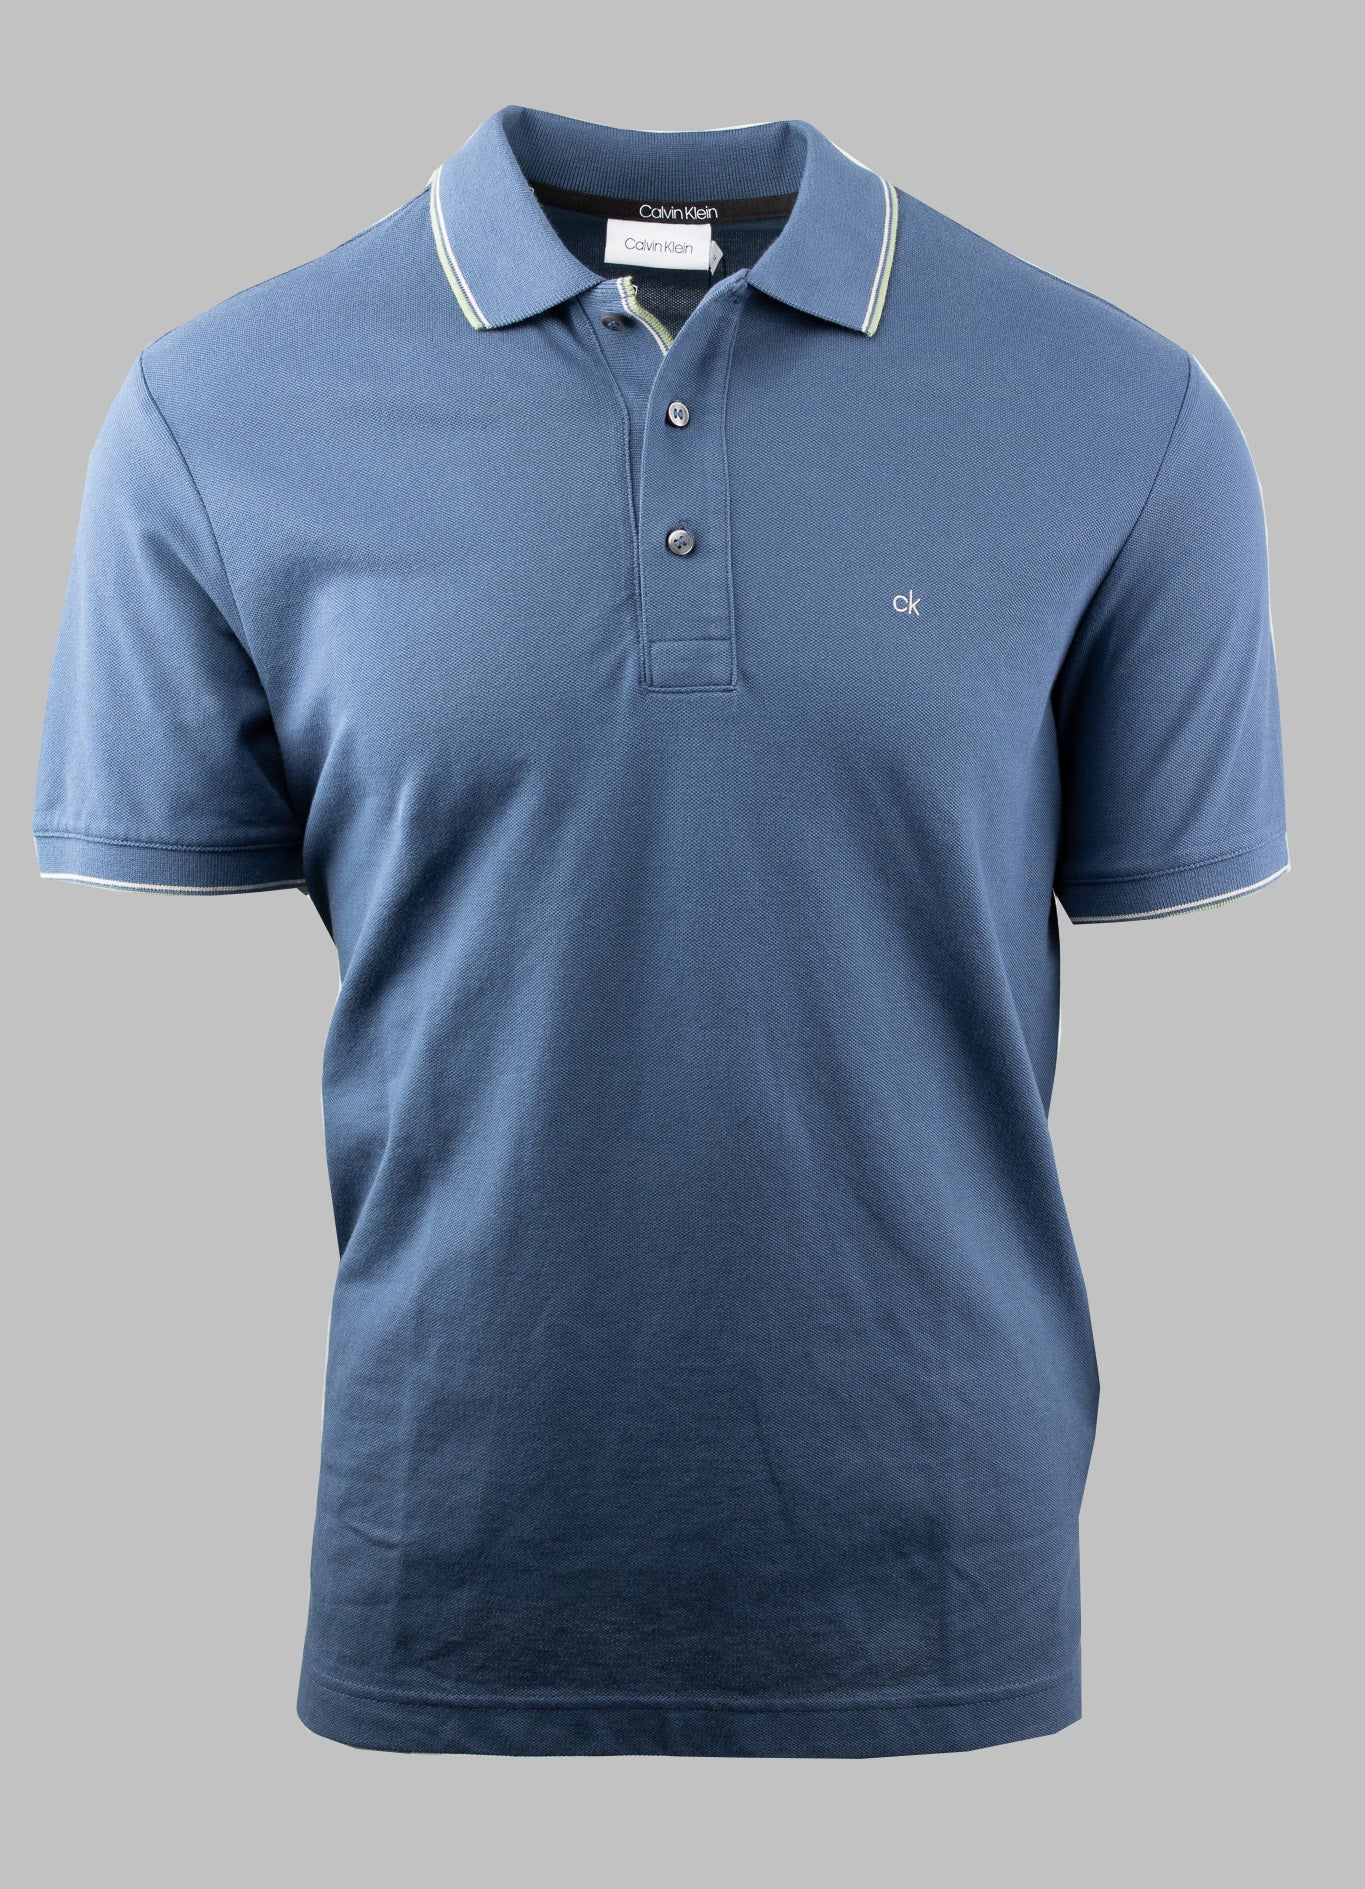 Calvin Klein Dark Denim Blue Stretch Polo Shirt K10K105939 CEC for sale online Ireland